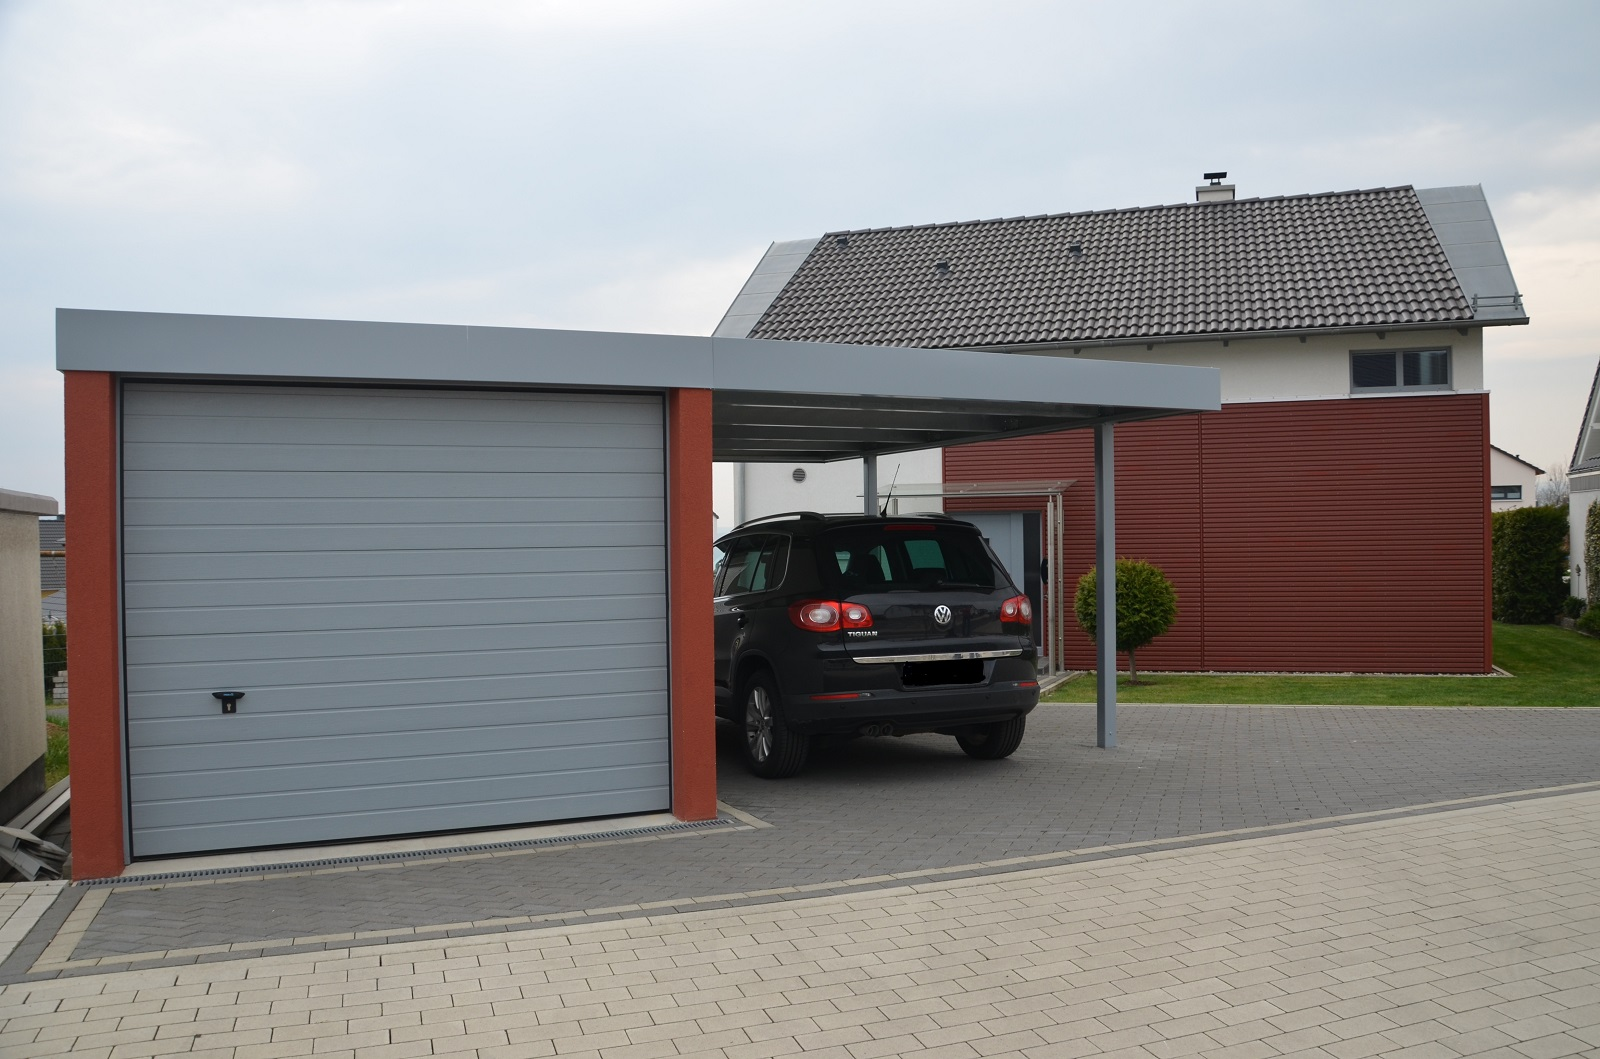 garagen esb carport mit garage. Black Bedroom Furniture Sets. Home Design Ideas